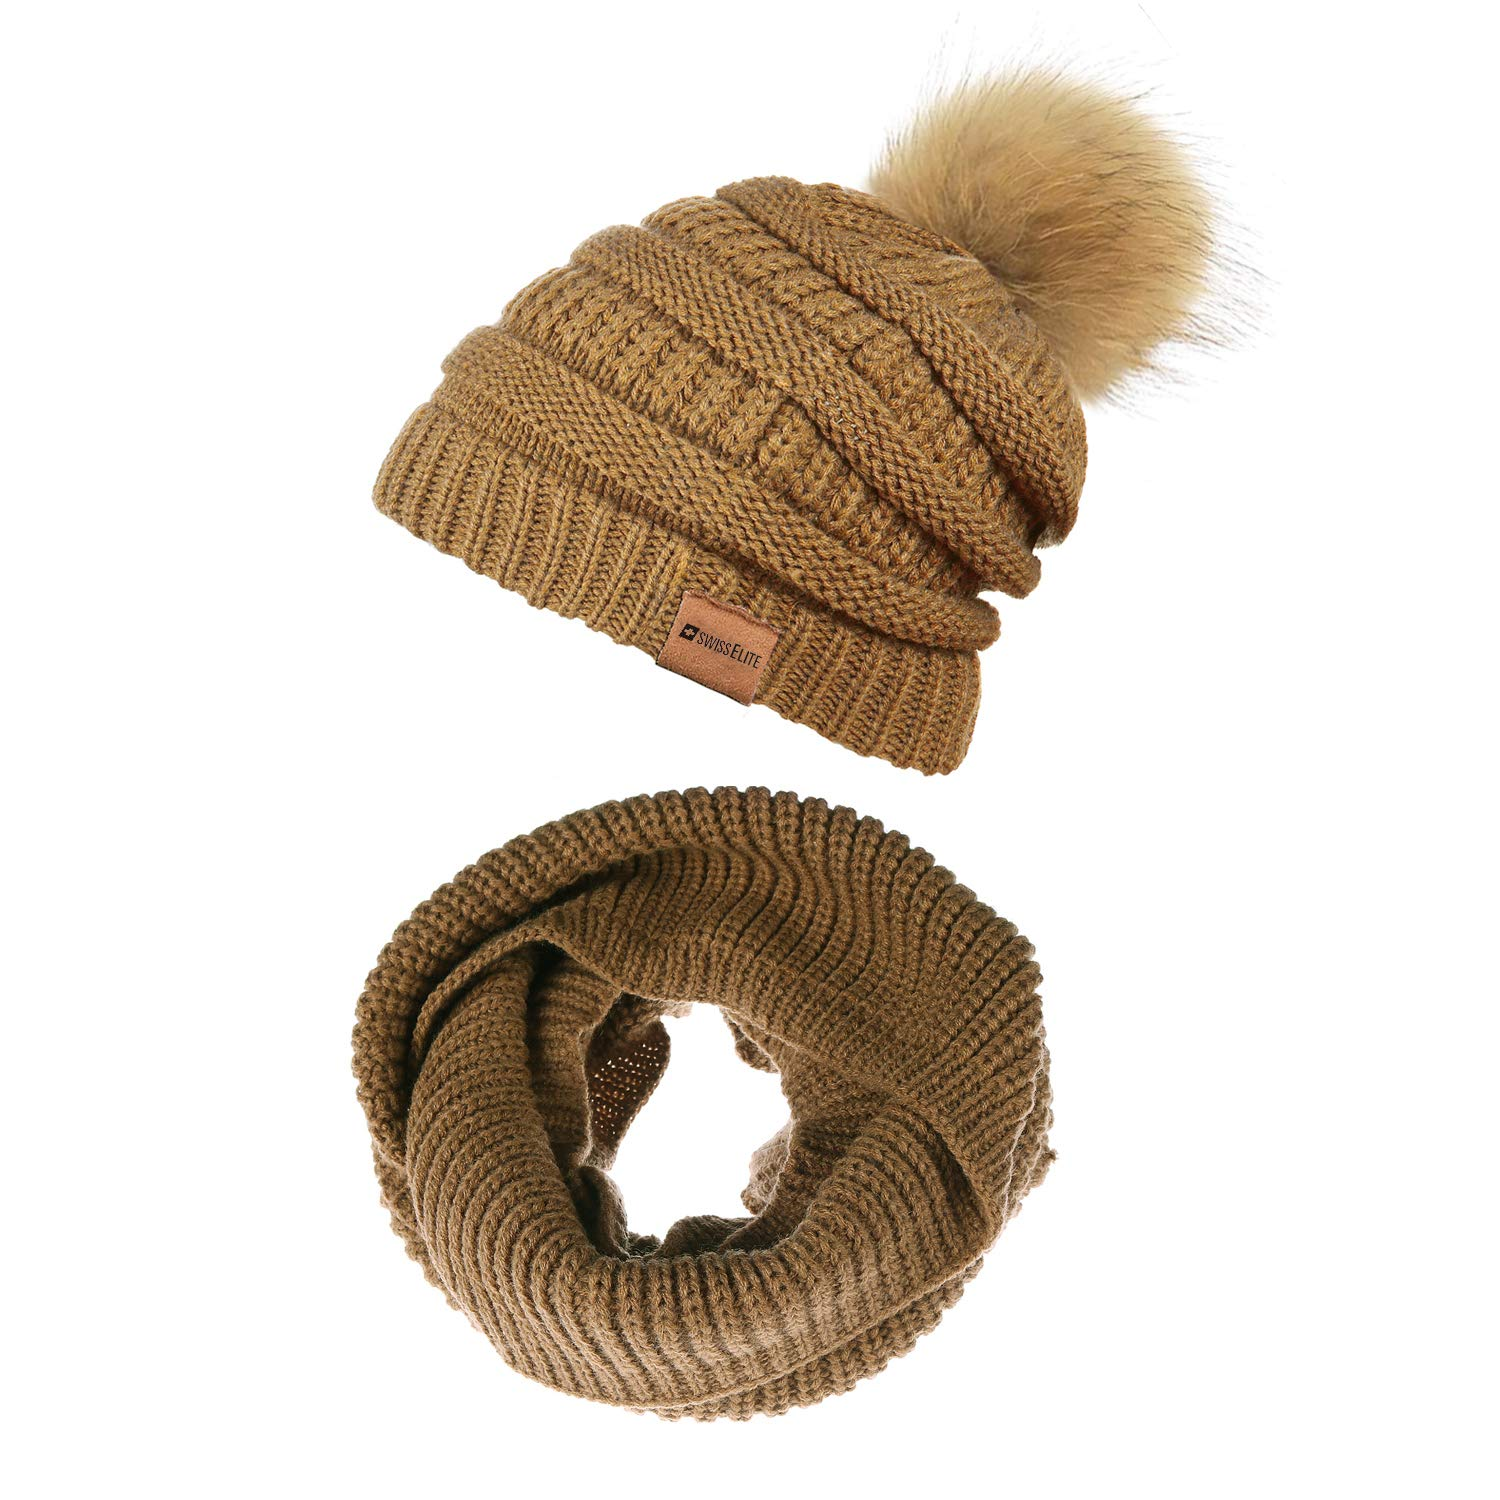 Tan 2 Pack Beanie Hats for women with Pom Pom  Warm, Soft Knit Beanie, Thick Slouchy Knit Skull Cap